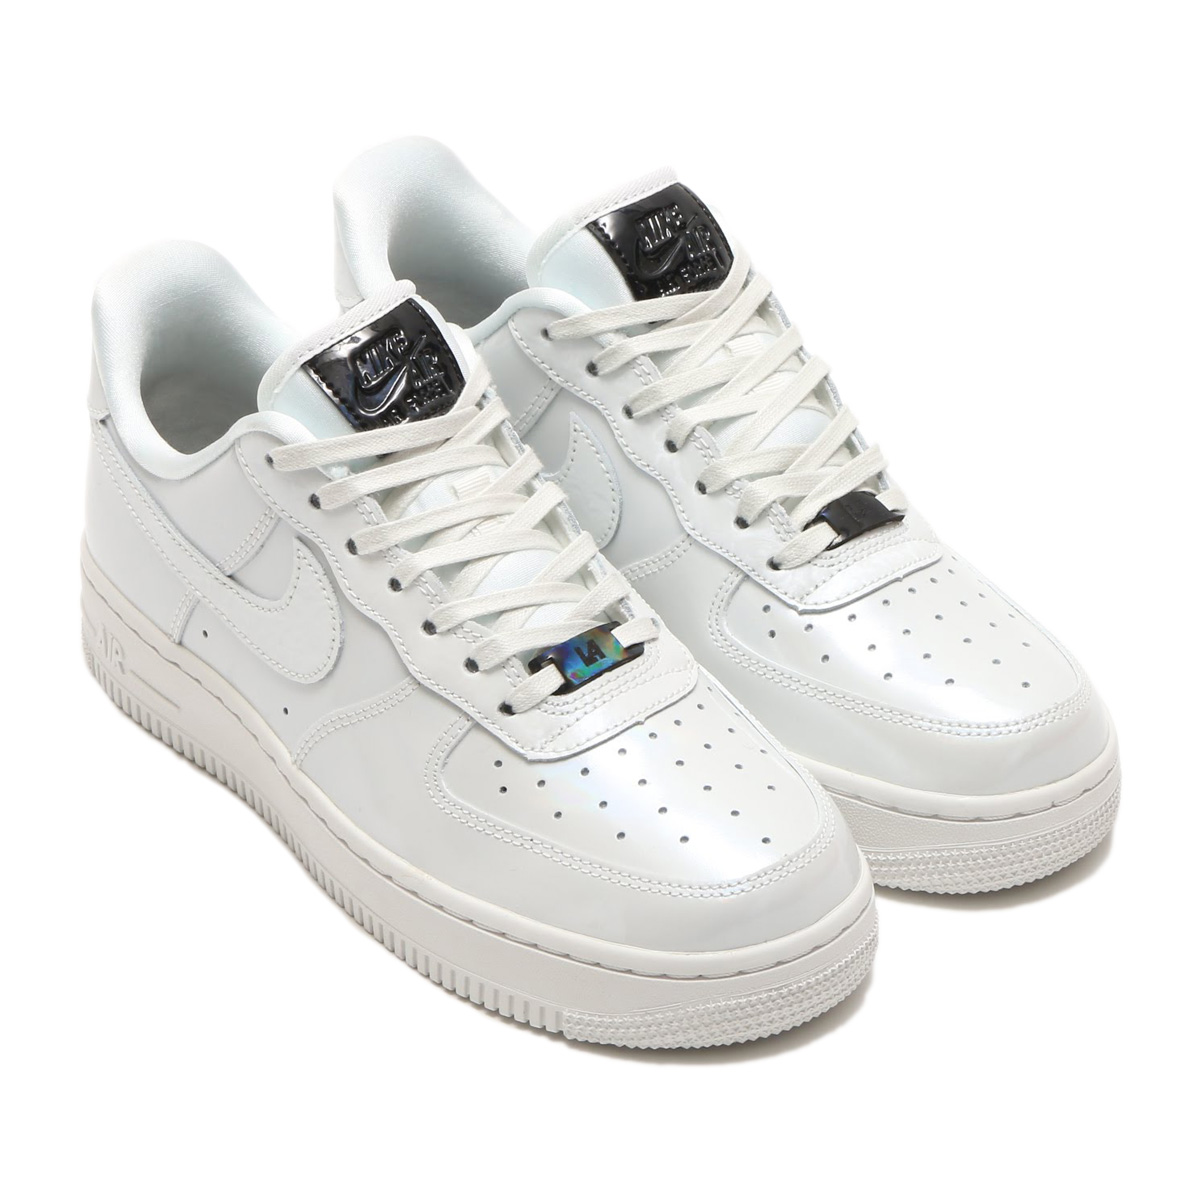 separation shoes b2356 d95d9 atmos pink: NIKE WMNS AIR FORCE 1 '07 LX (Nike women air force 1 07 ...